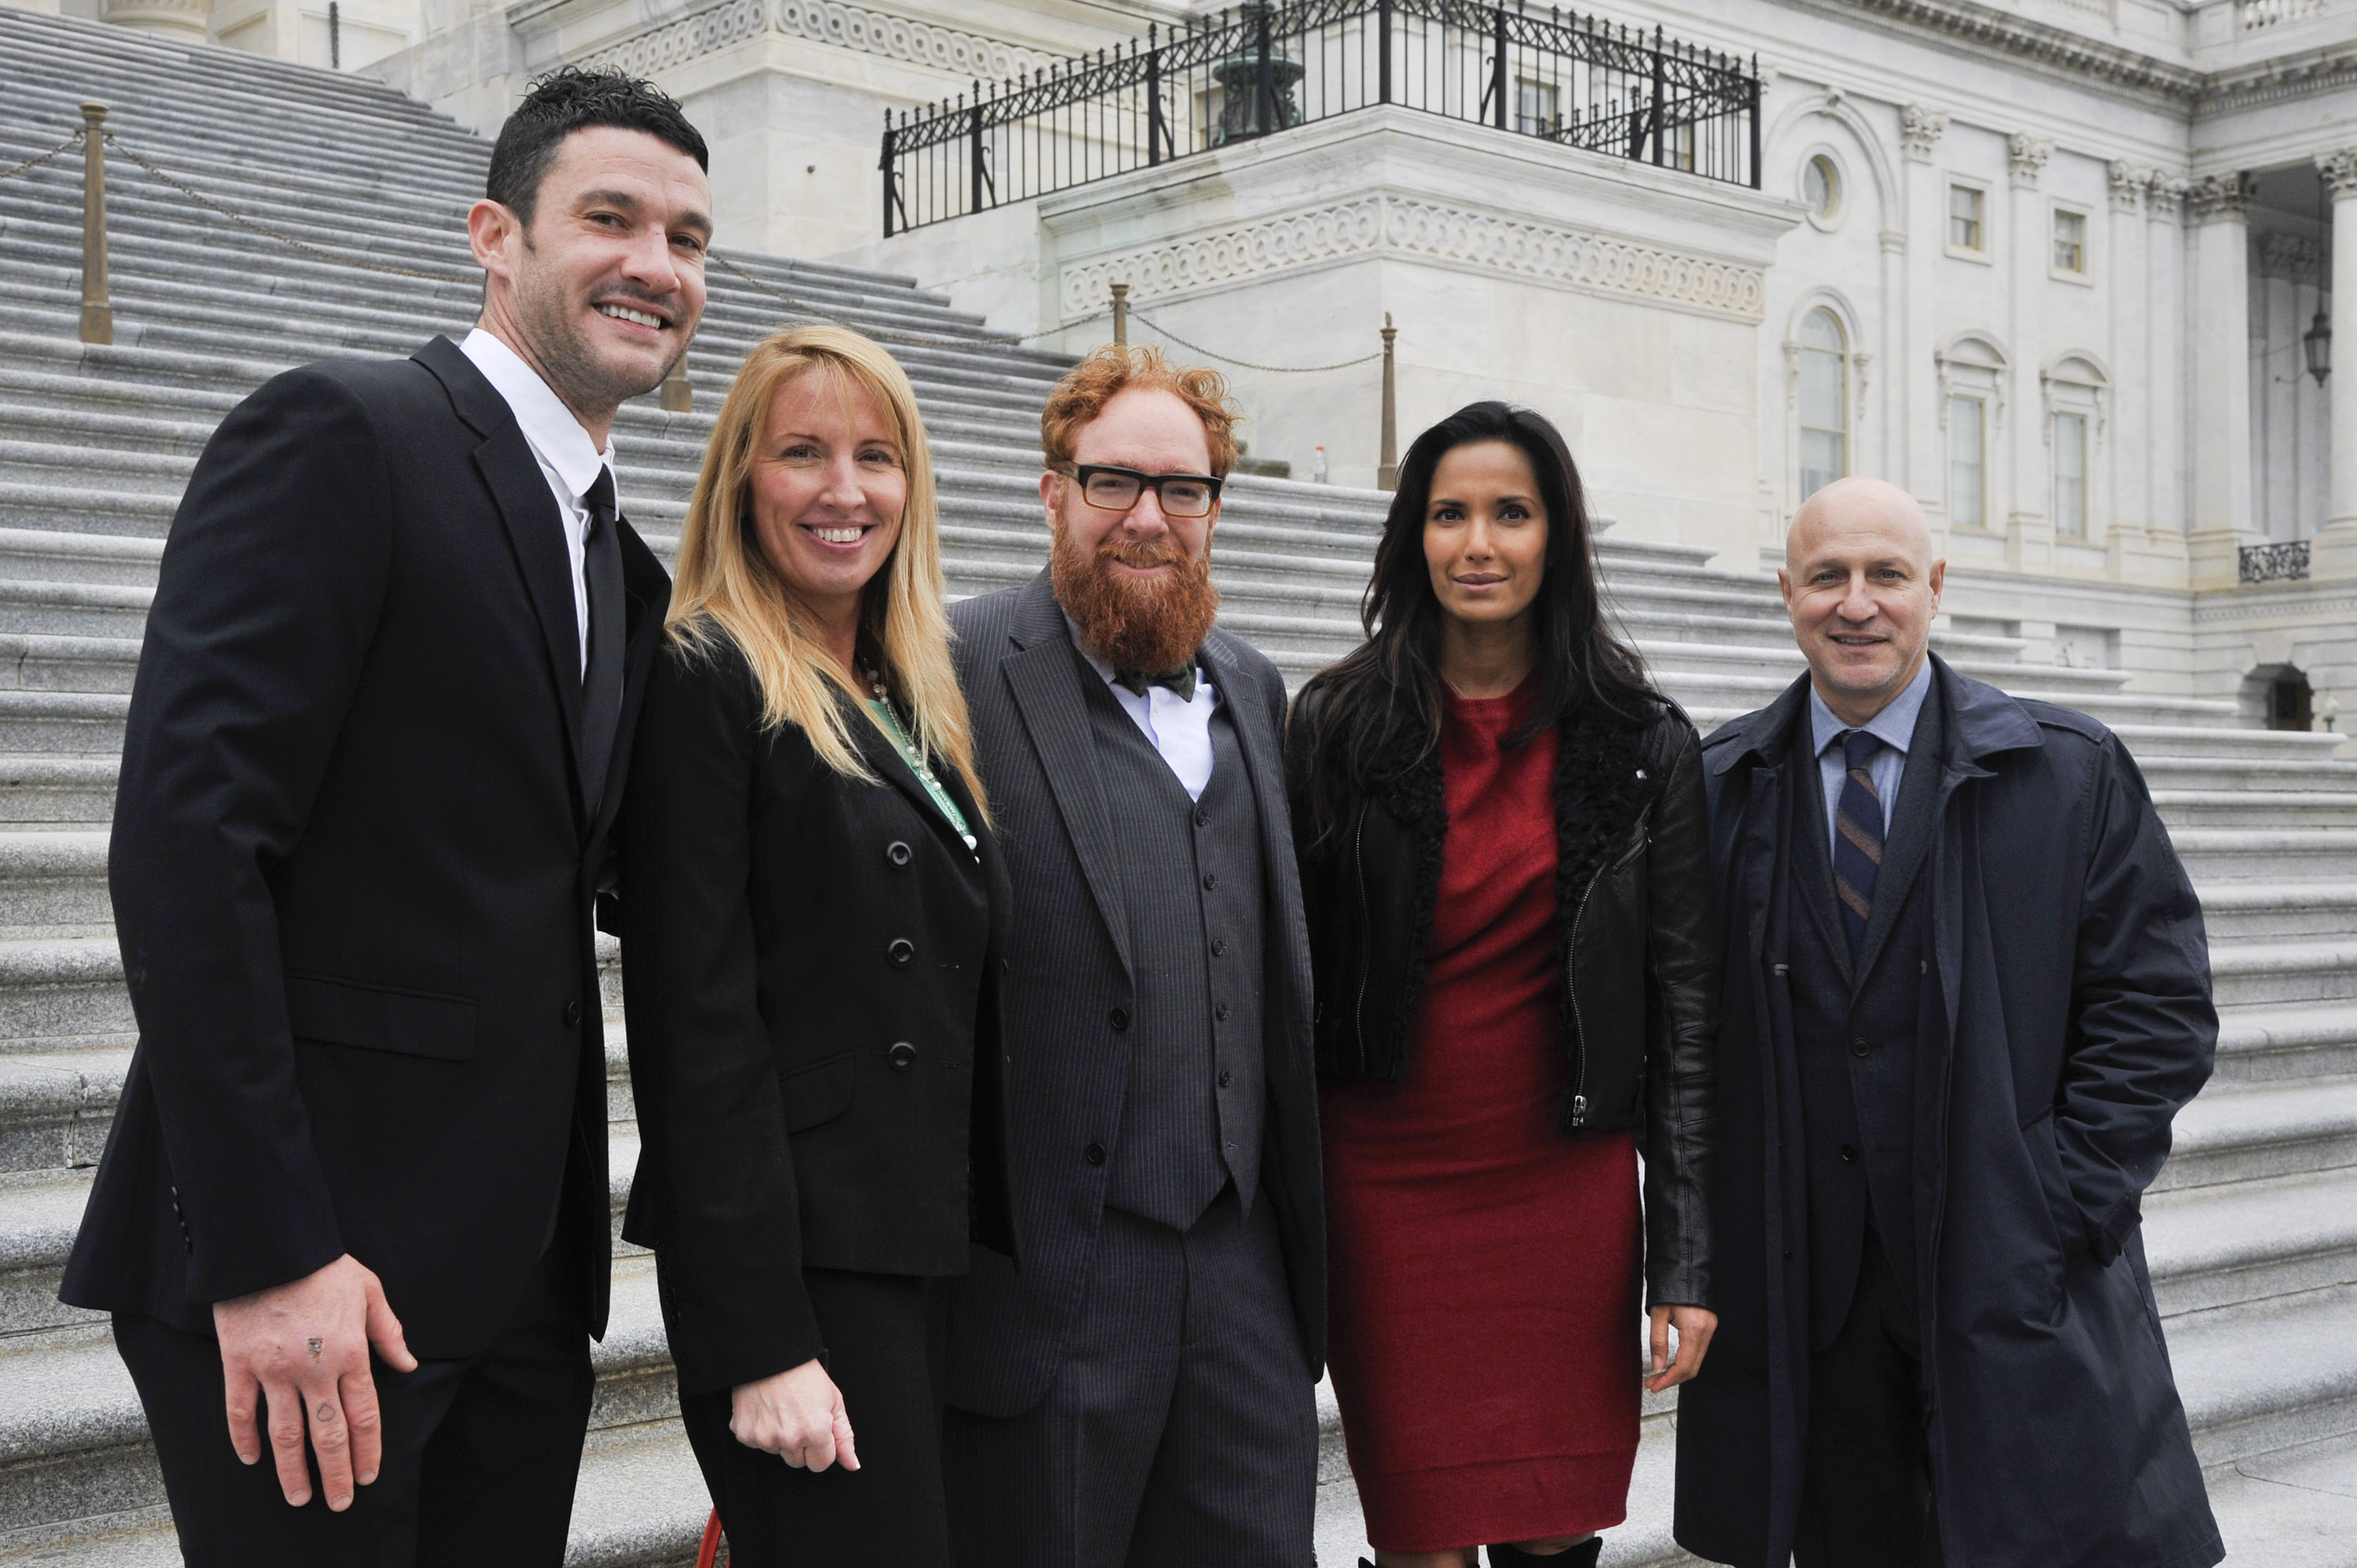 Chefs Sam Talbot, Jennifer Pulapaka, Matt Weingarten, Top Chef Host Padma Lakshmi and Chef Tom Colicchio pose for a photo on the capitol steps as they came together on Capitol Hill for a day of action and advocacy with about 30 other chefs on October 27, 2015 in Washington, DC. (Photo Courtesy of Kris Connor/Getty Images for Chef Action Network)